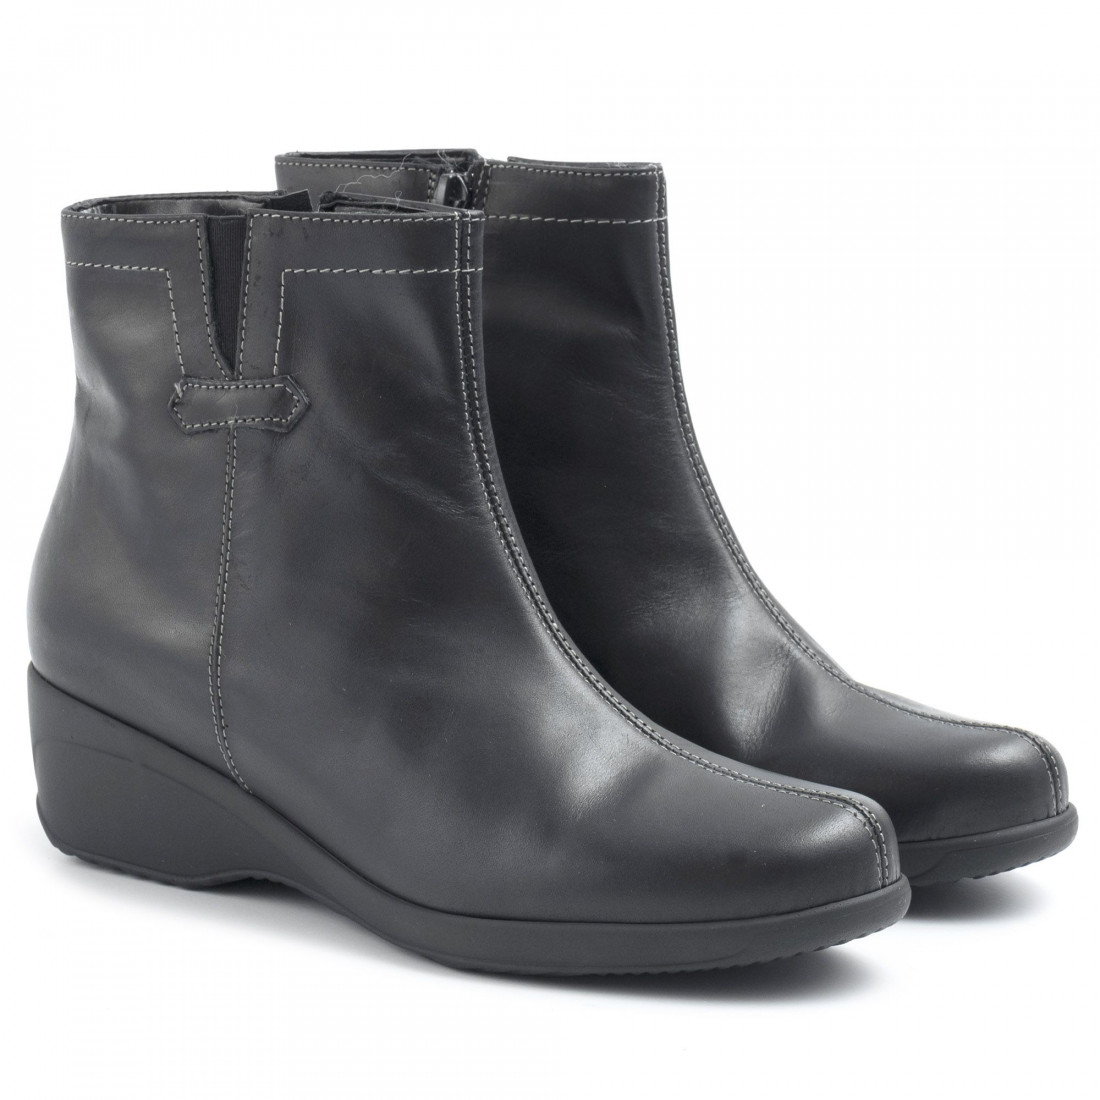 booties woman cinzia soft ir9078003 6494